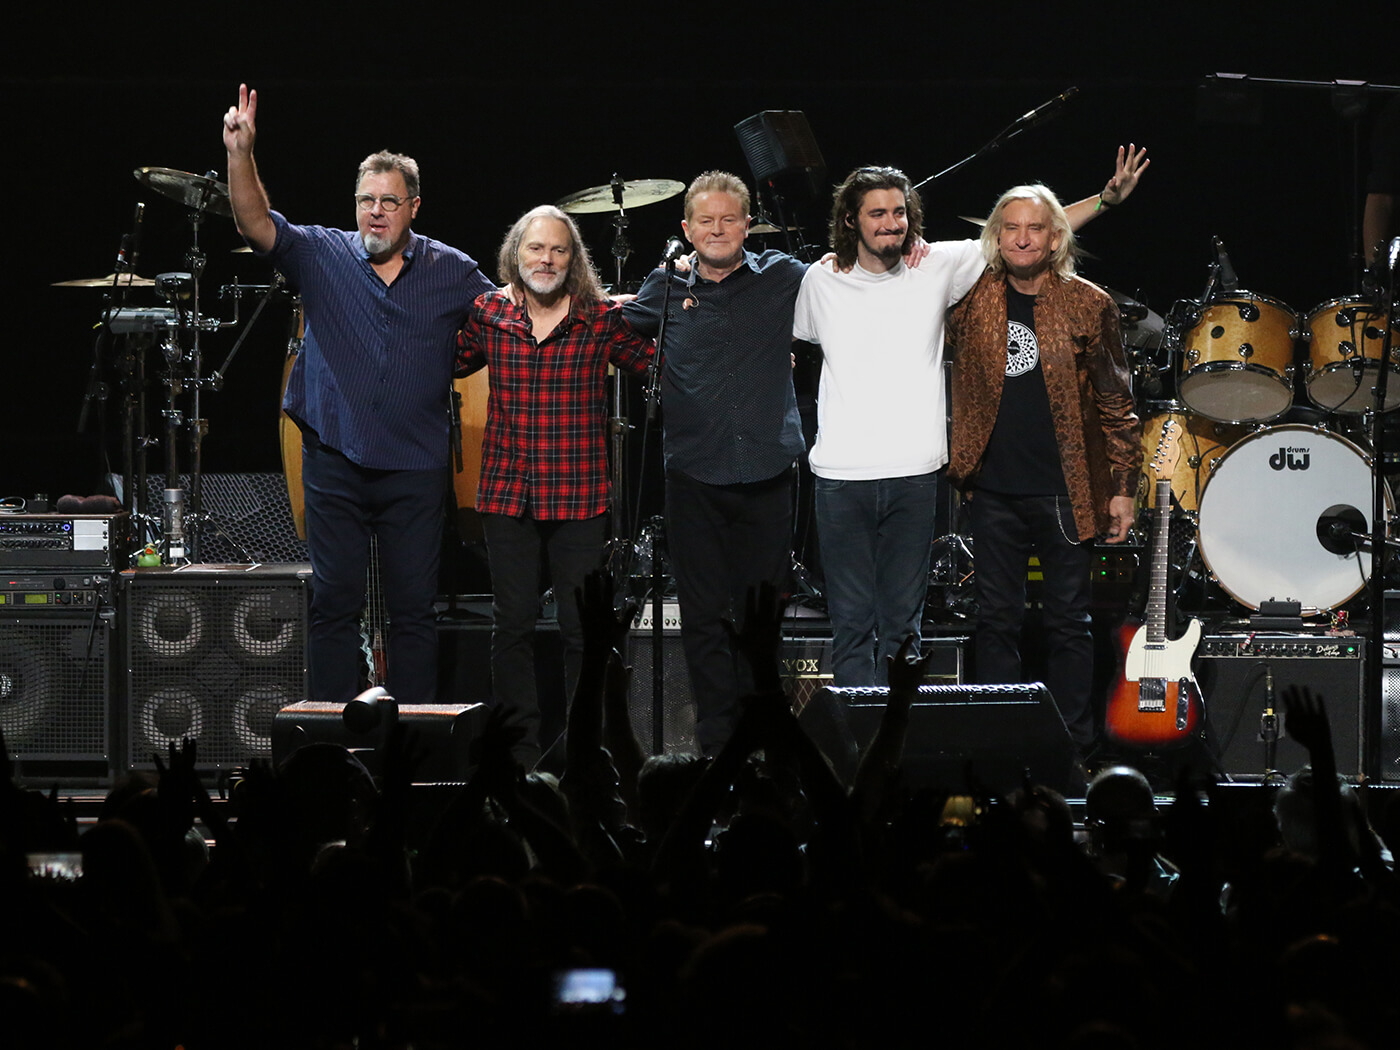 Eagles announce Hotel California shows at Wembley - UNCUT